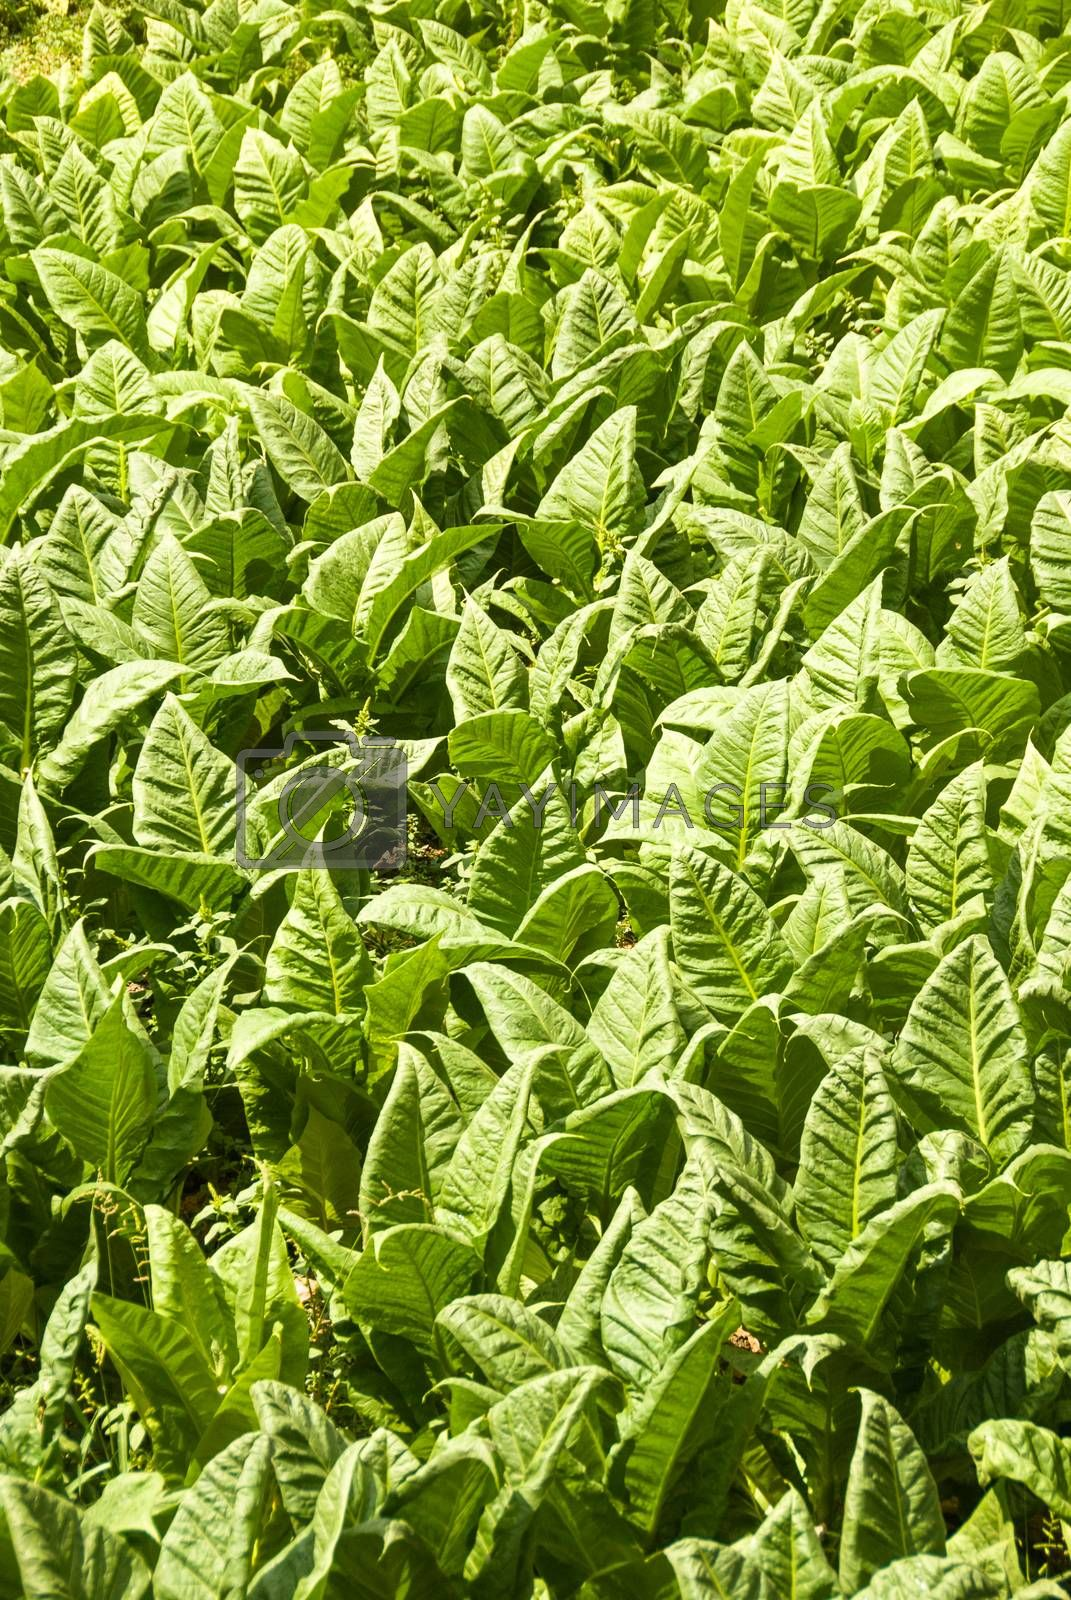 vertical view of field planted with tobacco leaves